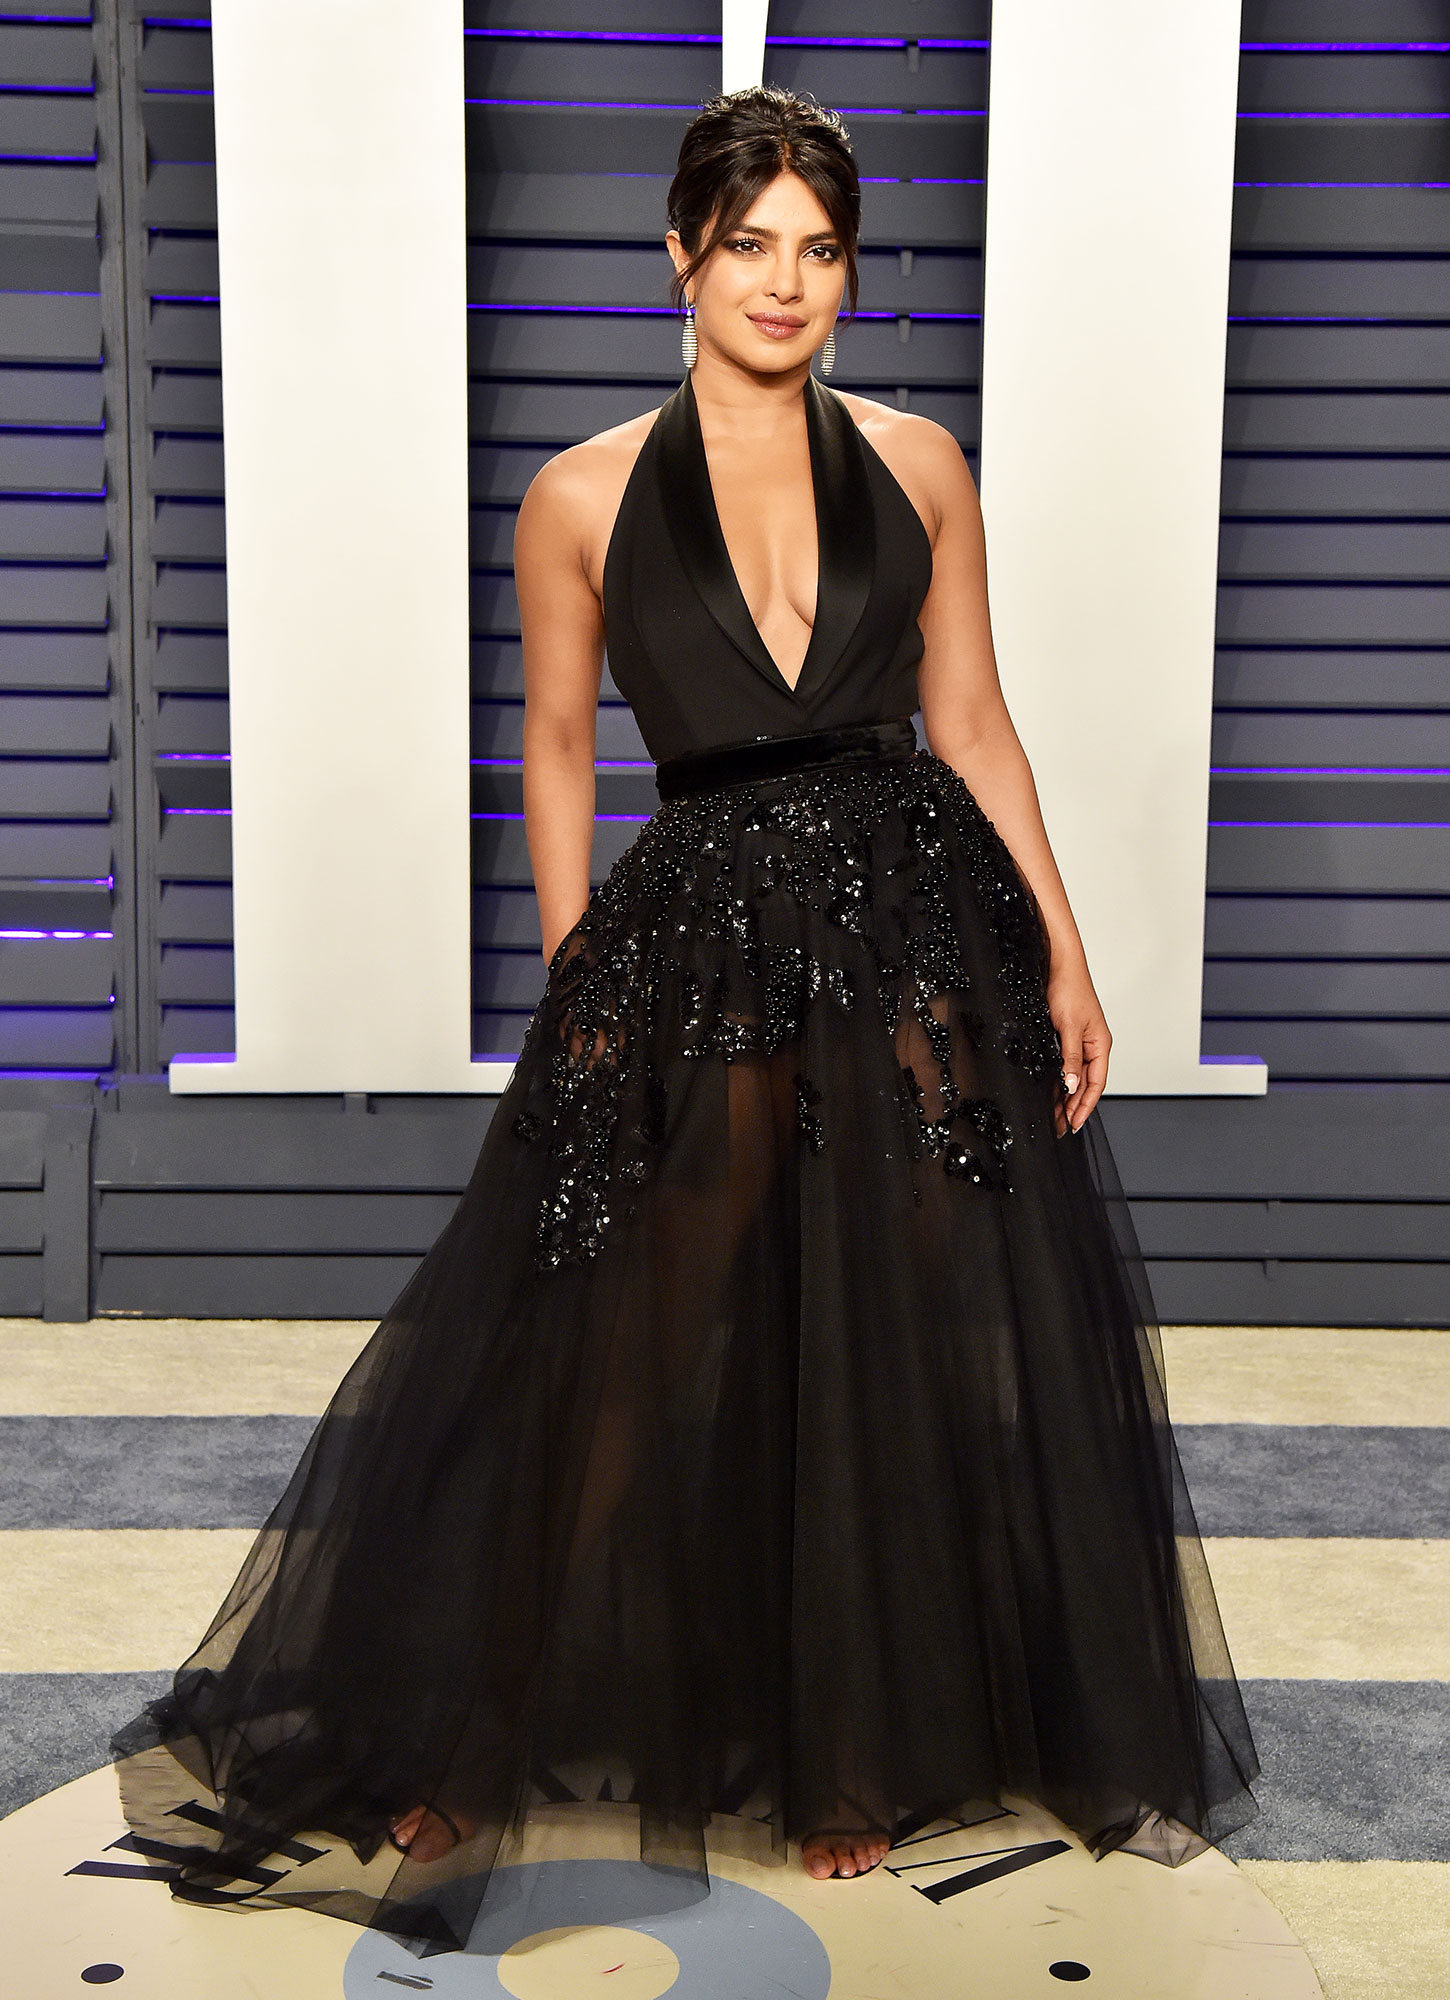 Priyanka Chopra vanity fair 2019 black gown - She proved black is anything but boring in a plunging black Elie Saab ball gown at the 2019 Vanity Fair Oscar Party.